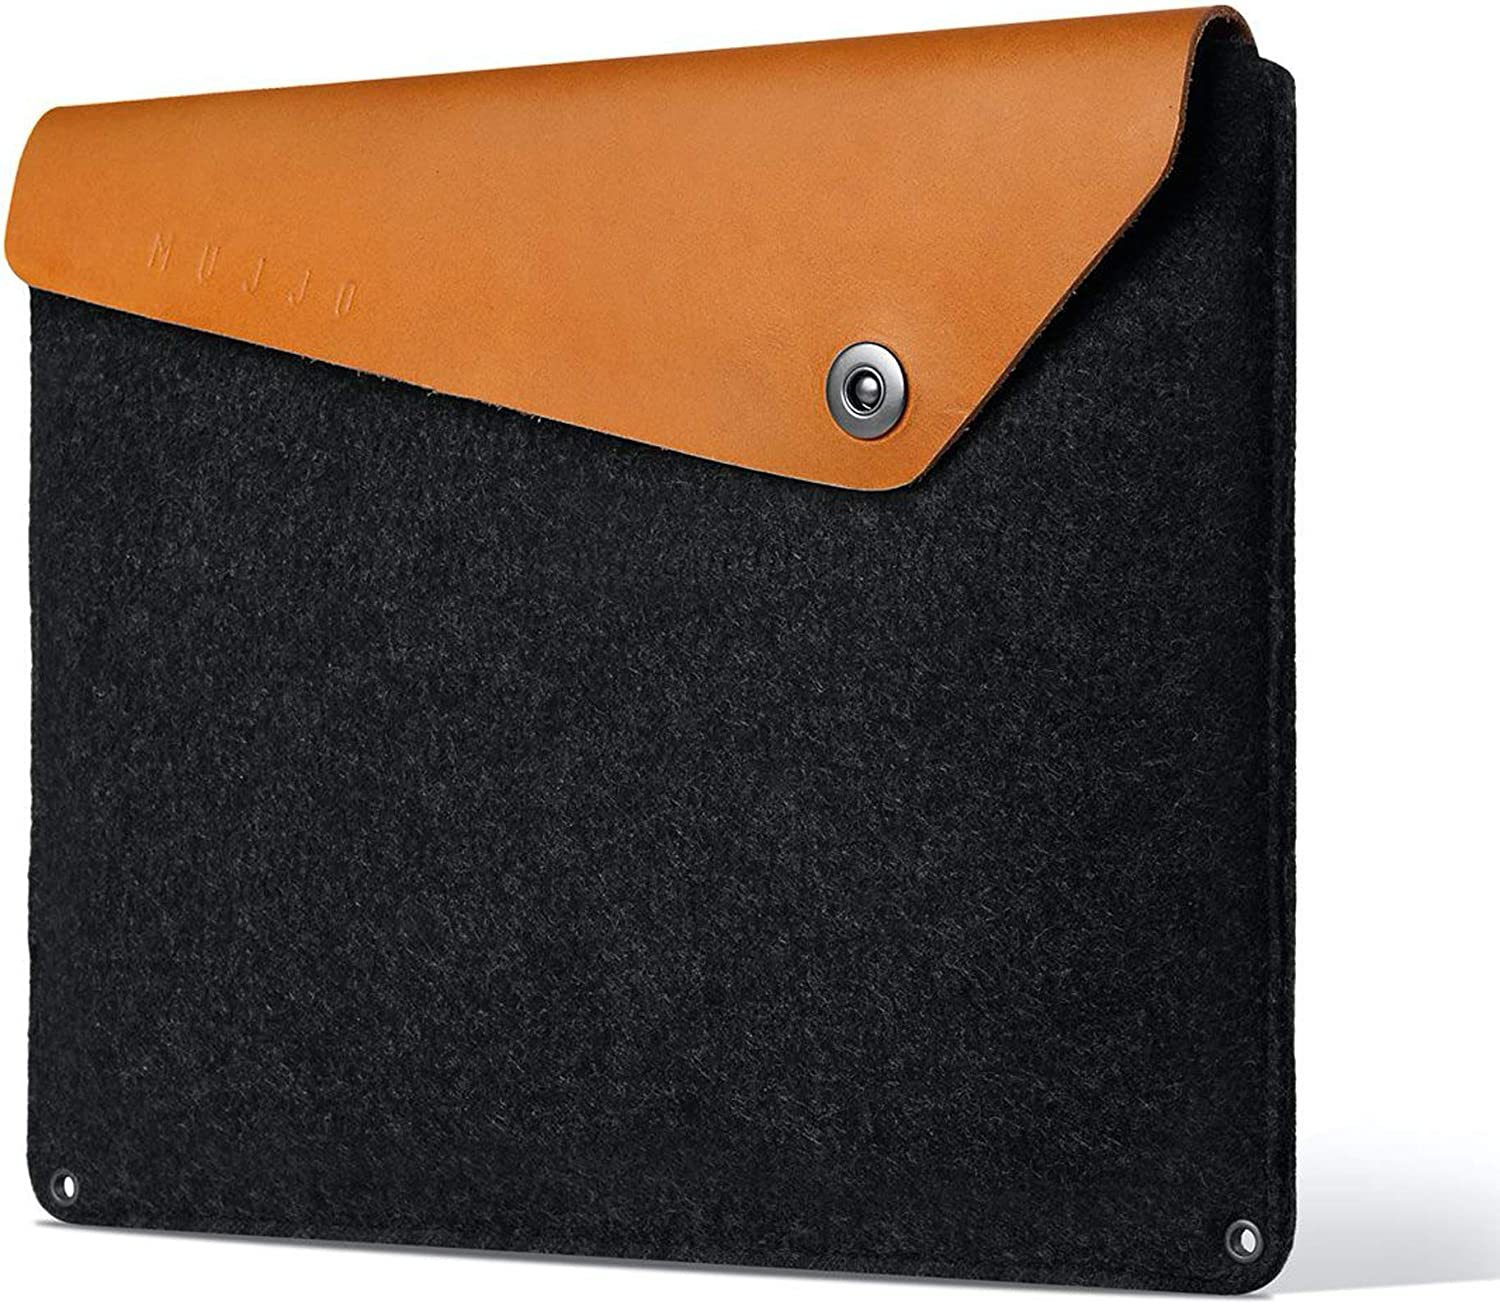 "Mujjo Sleeve for New MacBook Pro 16-inch, 15"" MacBook Pro (4th Gen) 